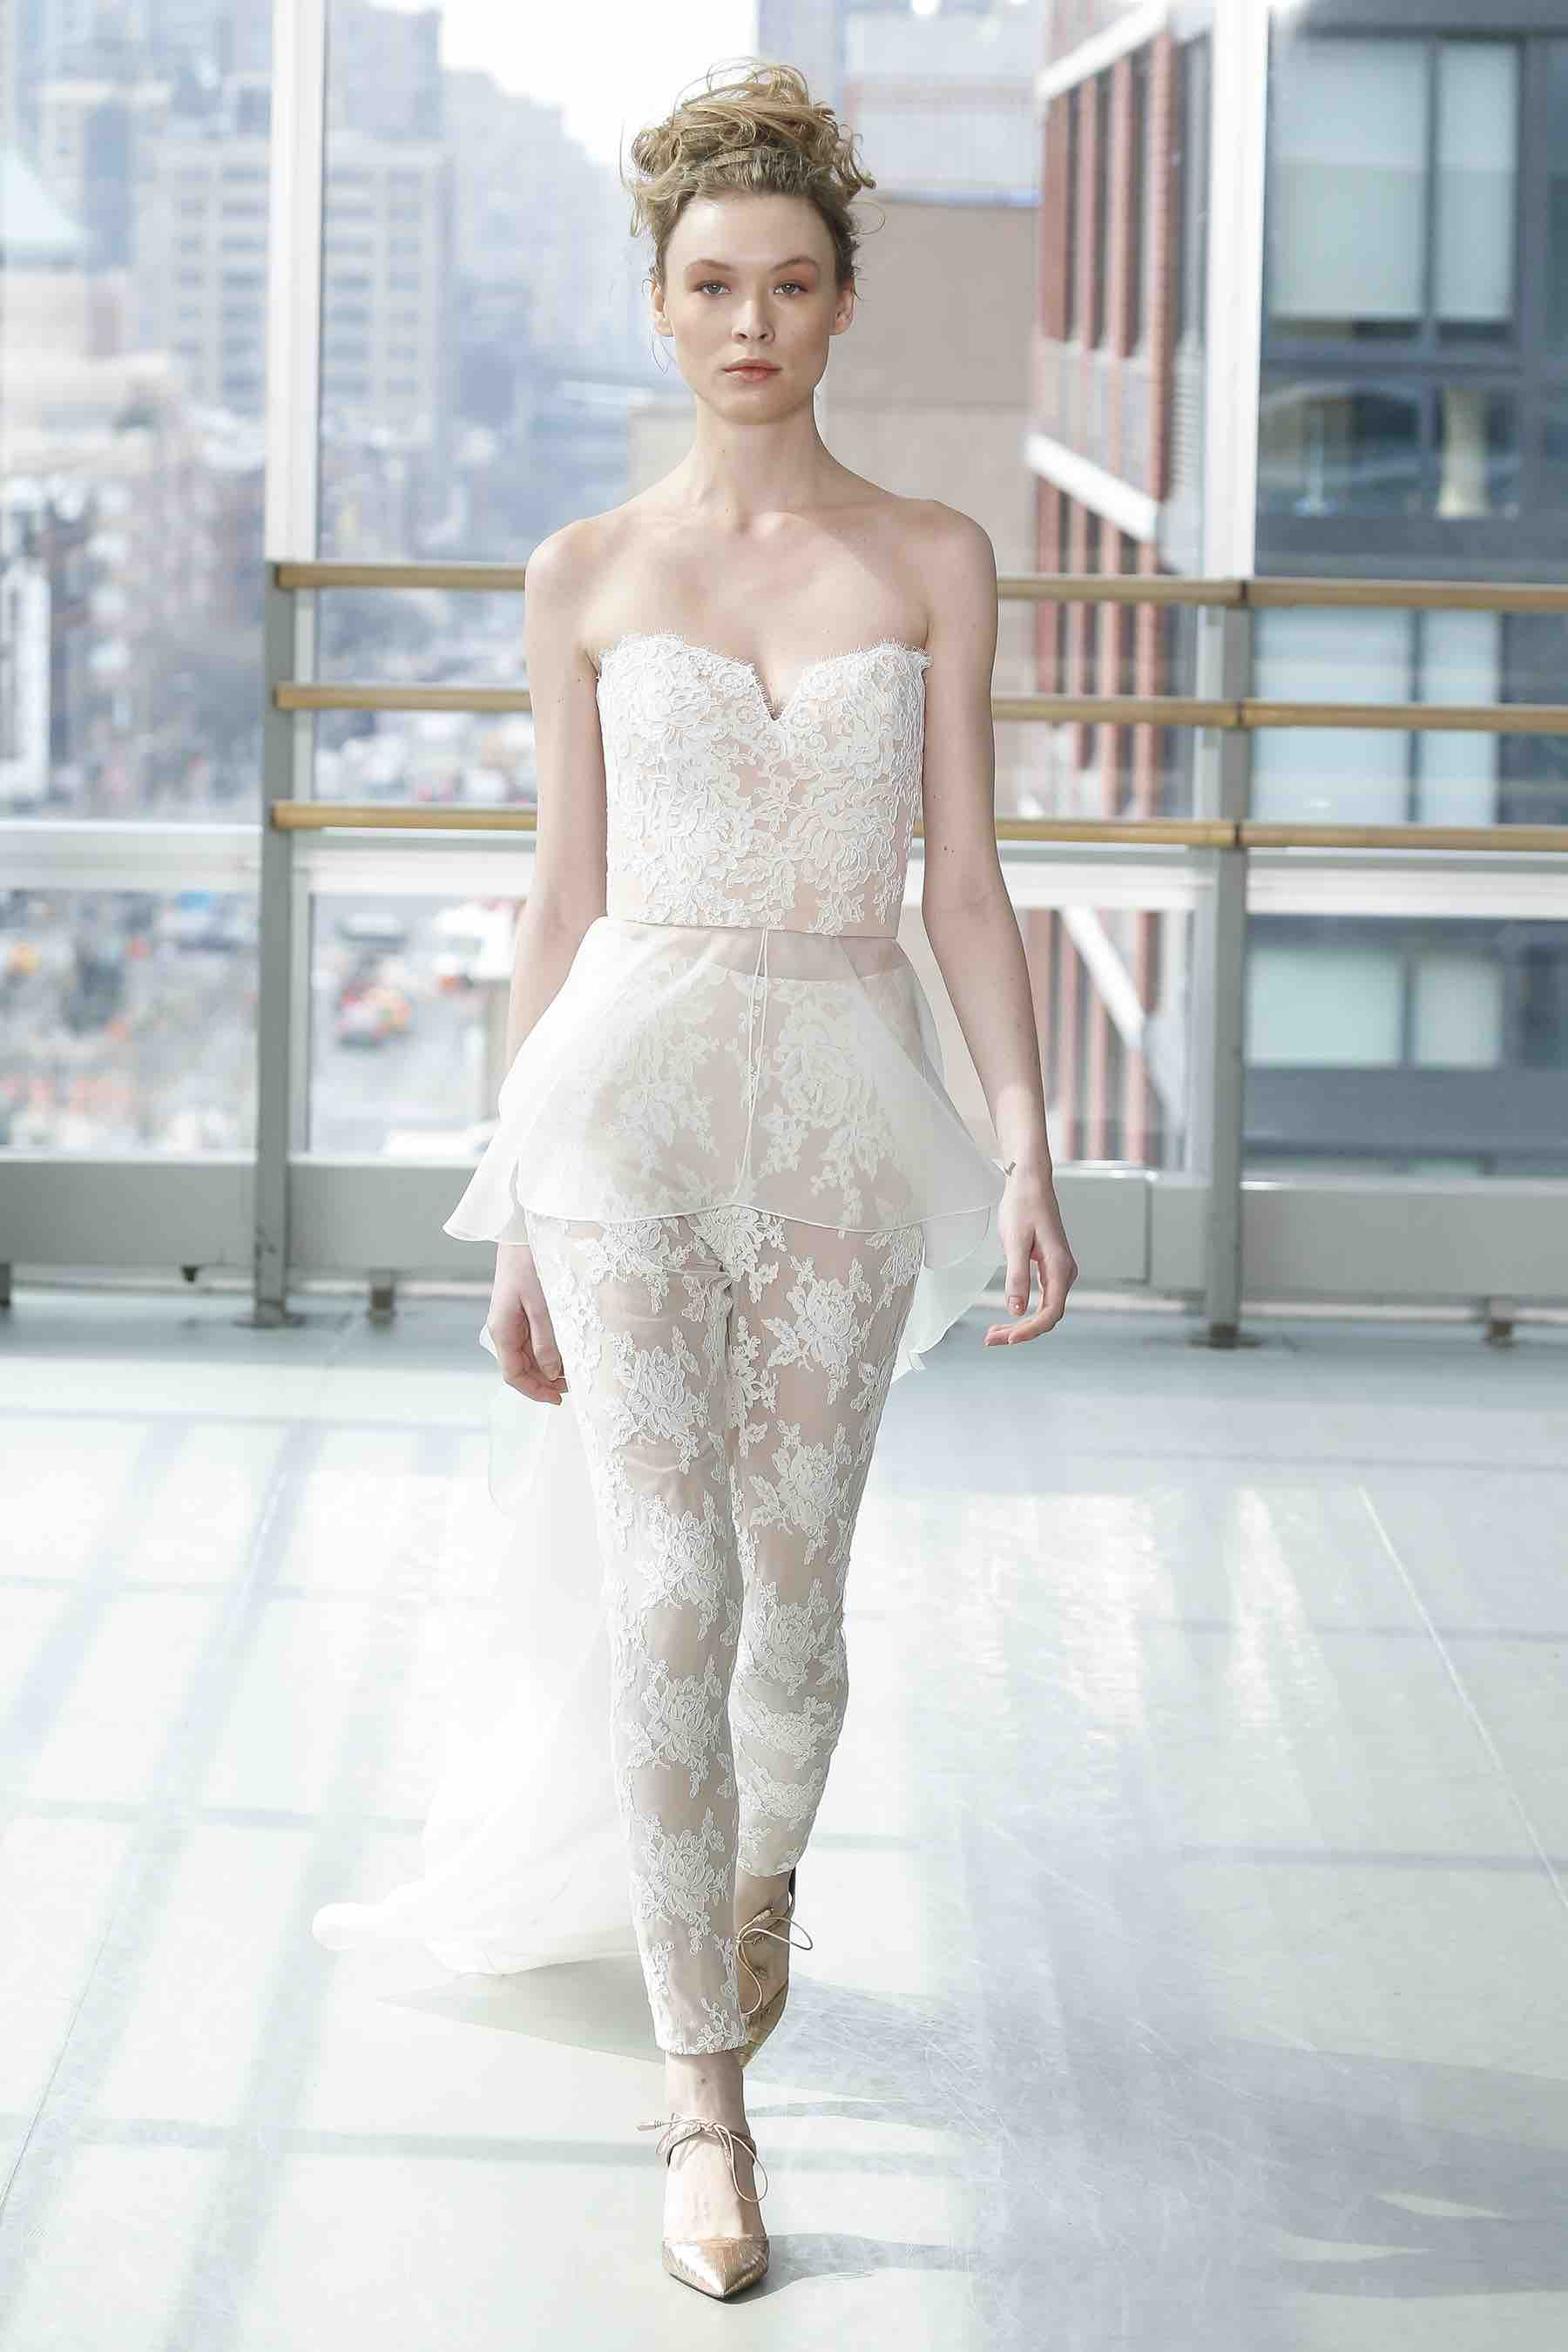 vows-of-style-gracyaccad-image04.jpg